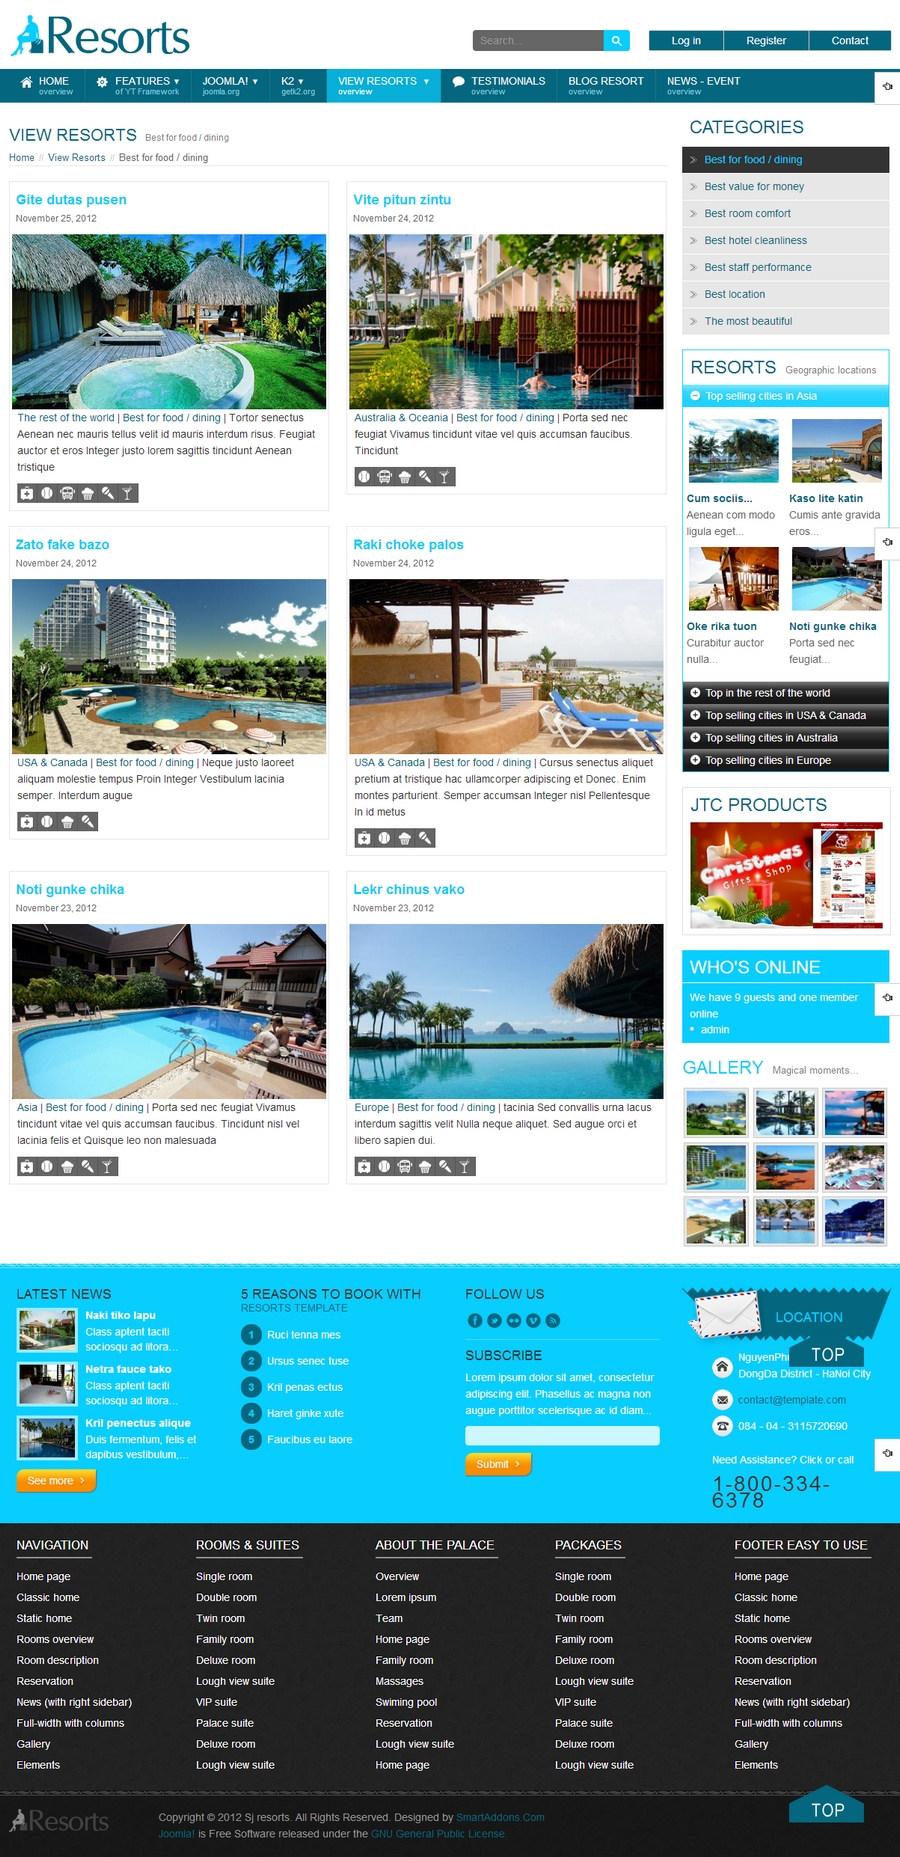 SJ Resorts - Responsive Joomla Resorts & spa Template - 06sobicat.jpg